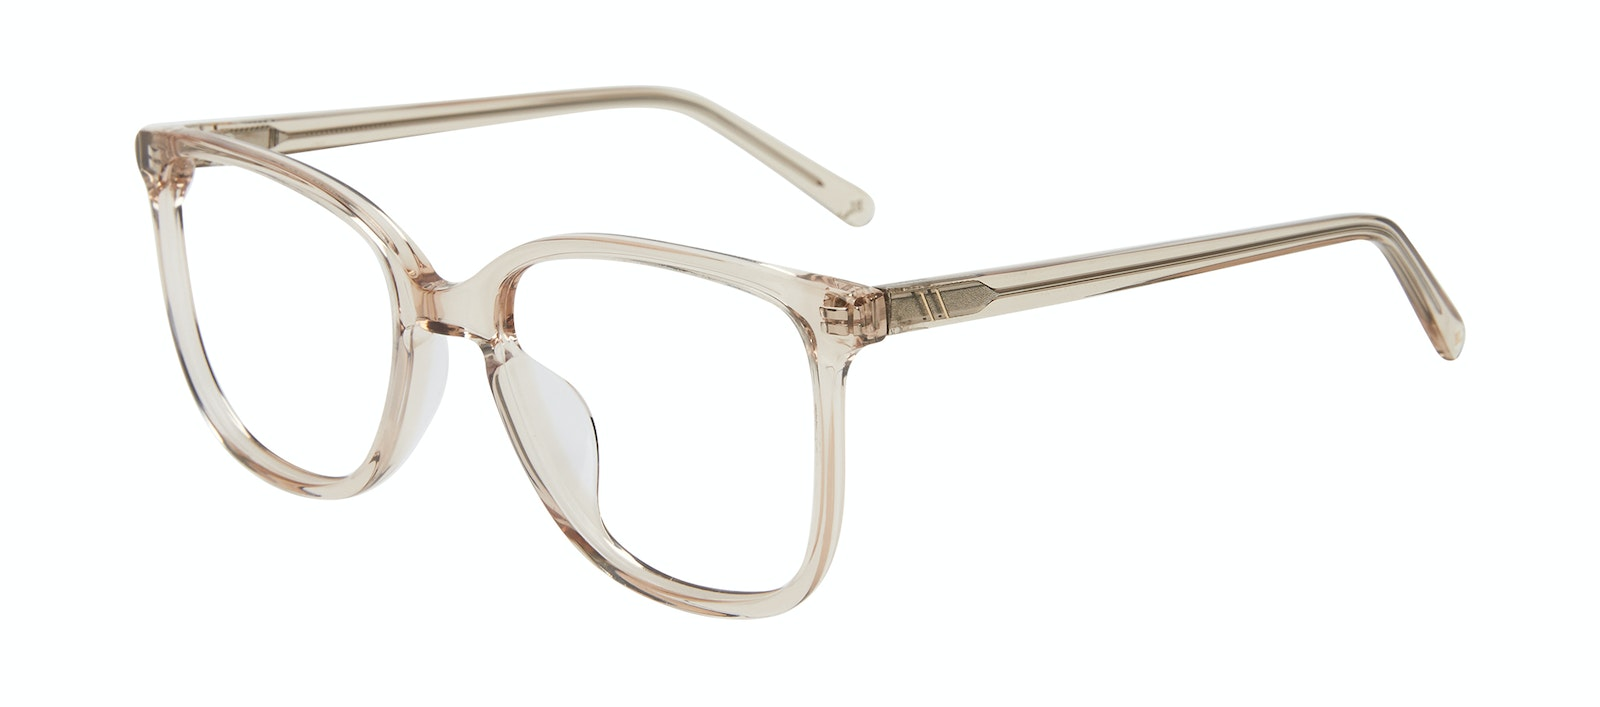 Affordable Fashion Glasses Square Eyeglasses Women Lead Blond Tilt